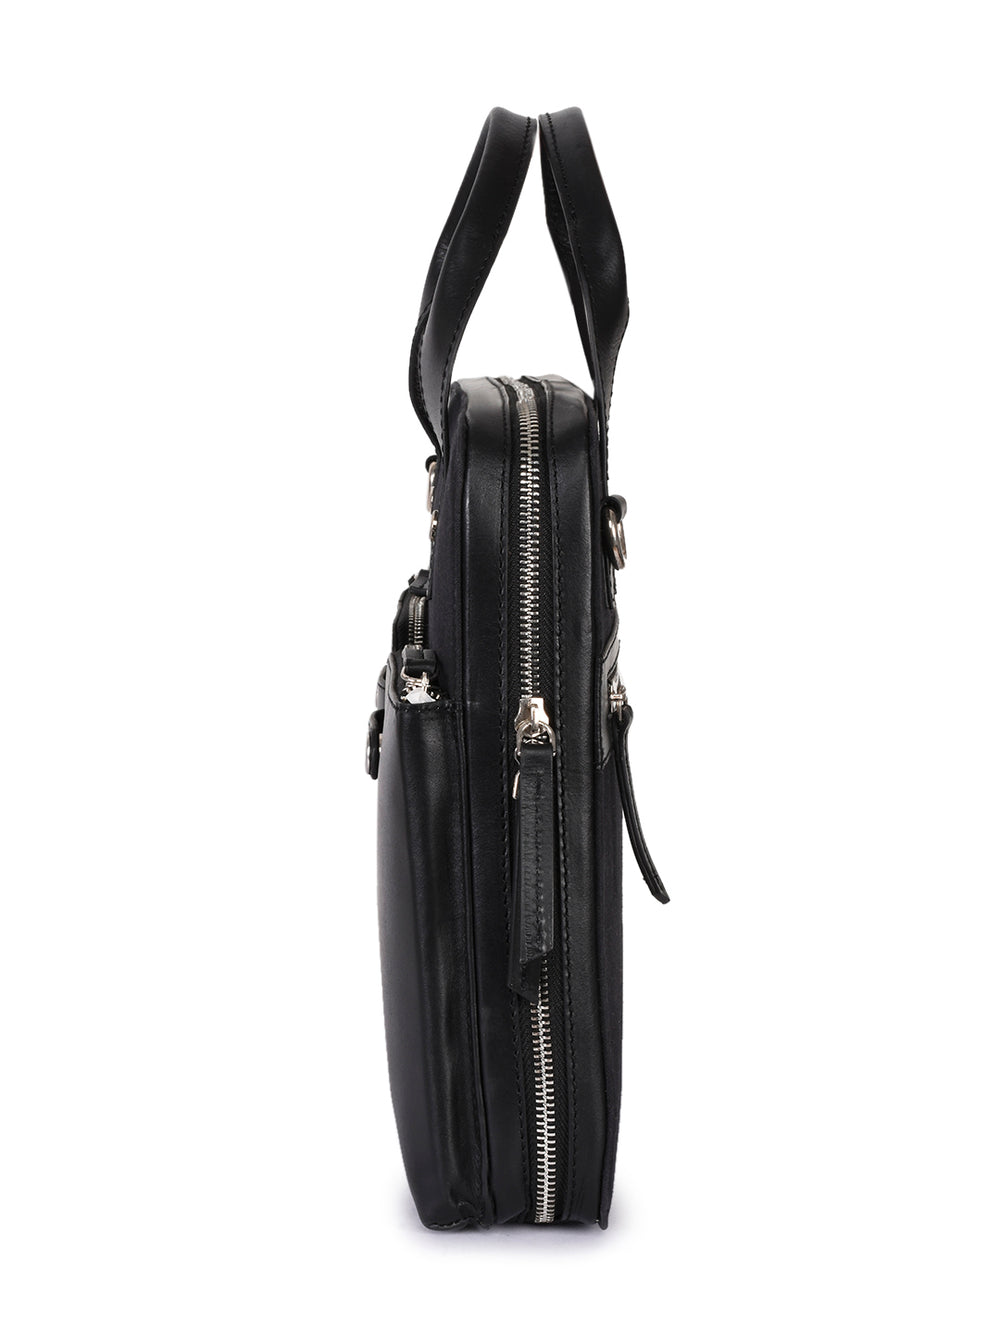 PRM629-Phive Rivers Men's Leather and Canvas Black Laptop Bag-Home > Bags > Crossbody Bags-Phive Rivers-Faeshon.com